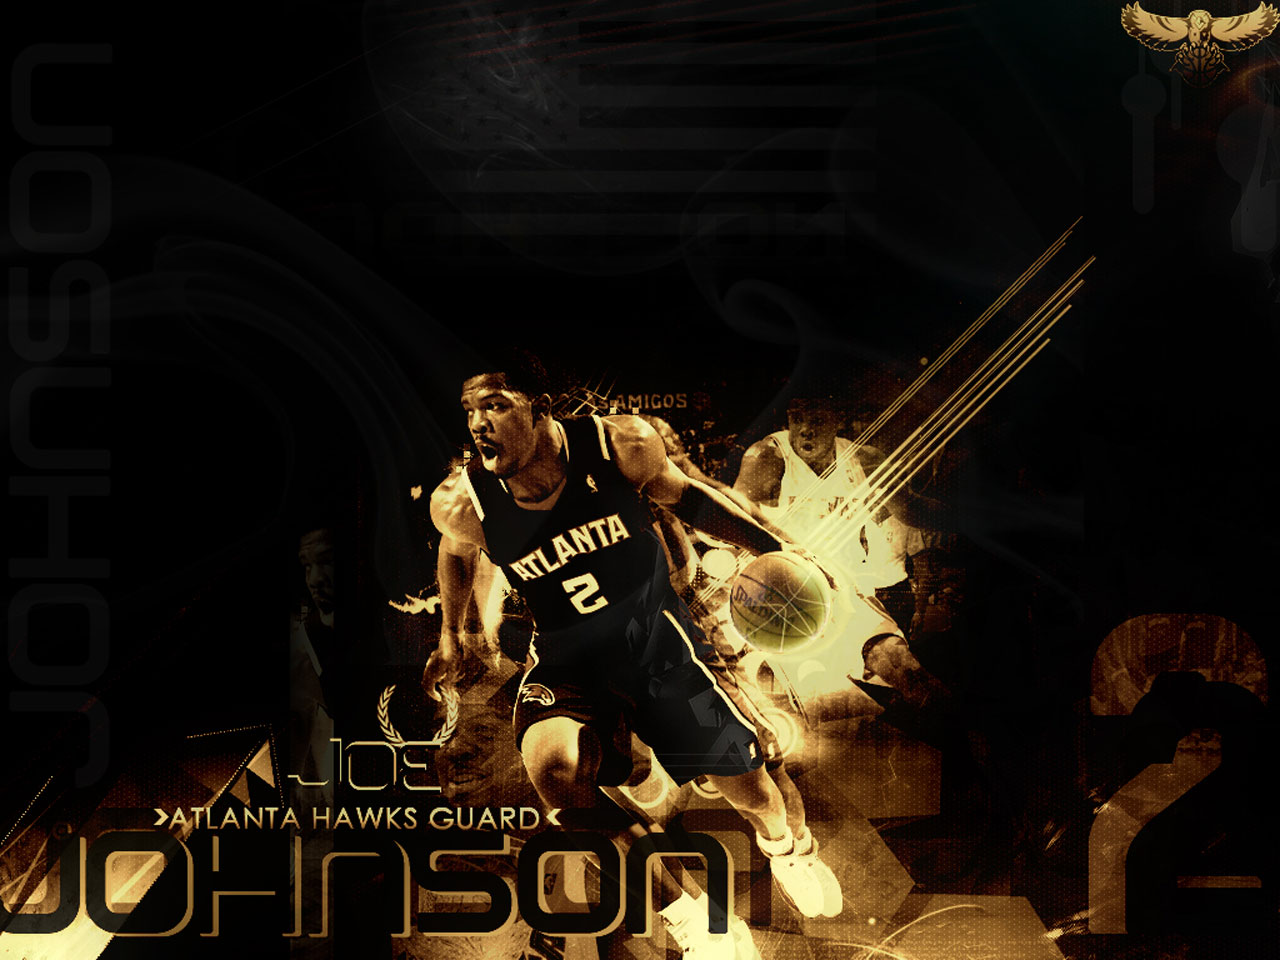 Joe Johnson Hawks Wallpaper Basketball Wallpapers at 1280x960